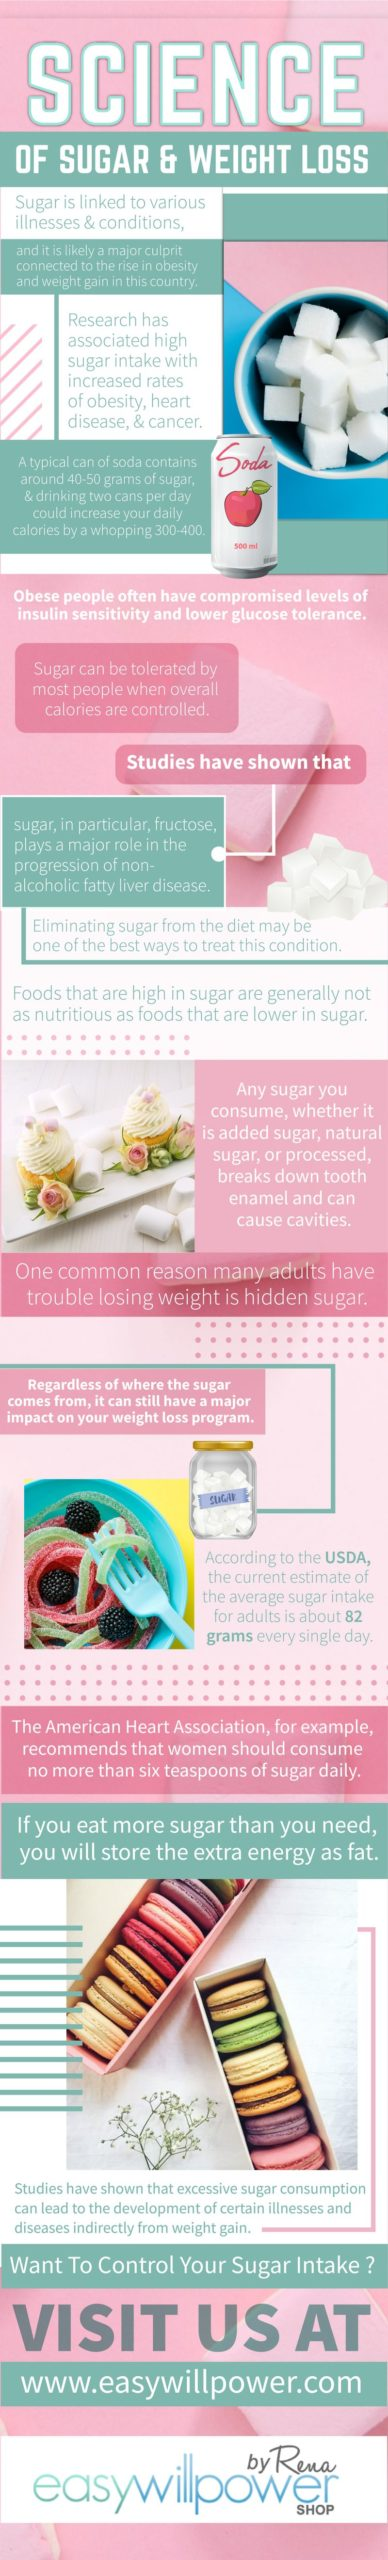 Science Of Sugar & Weight Loss